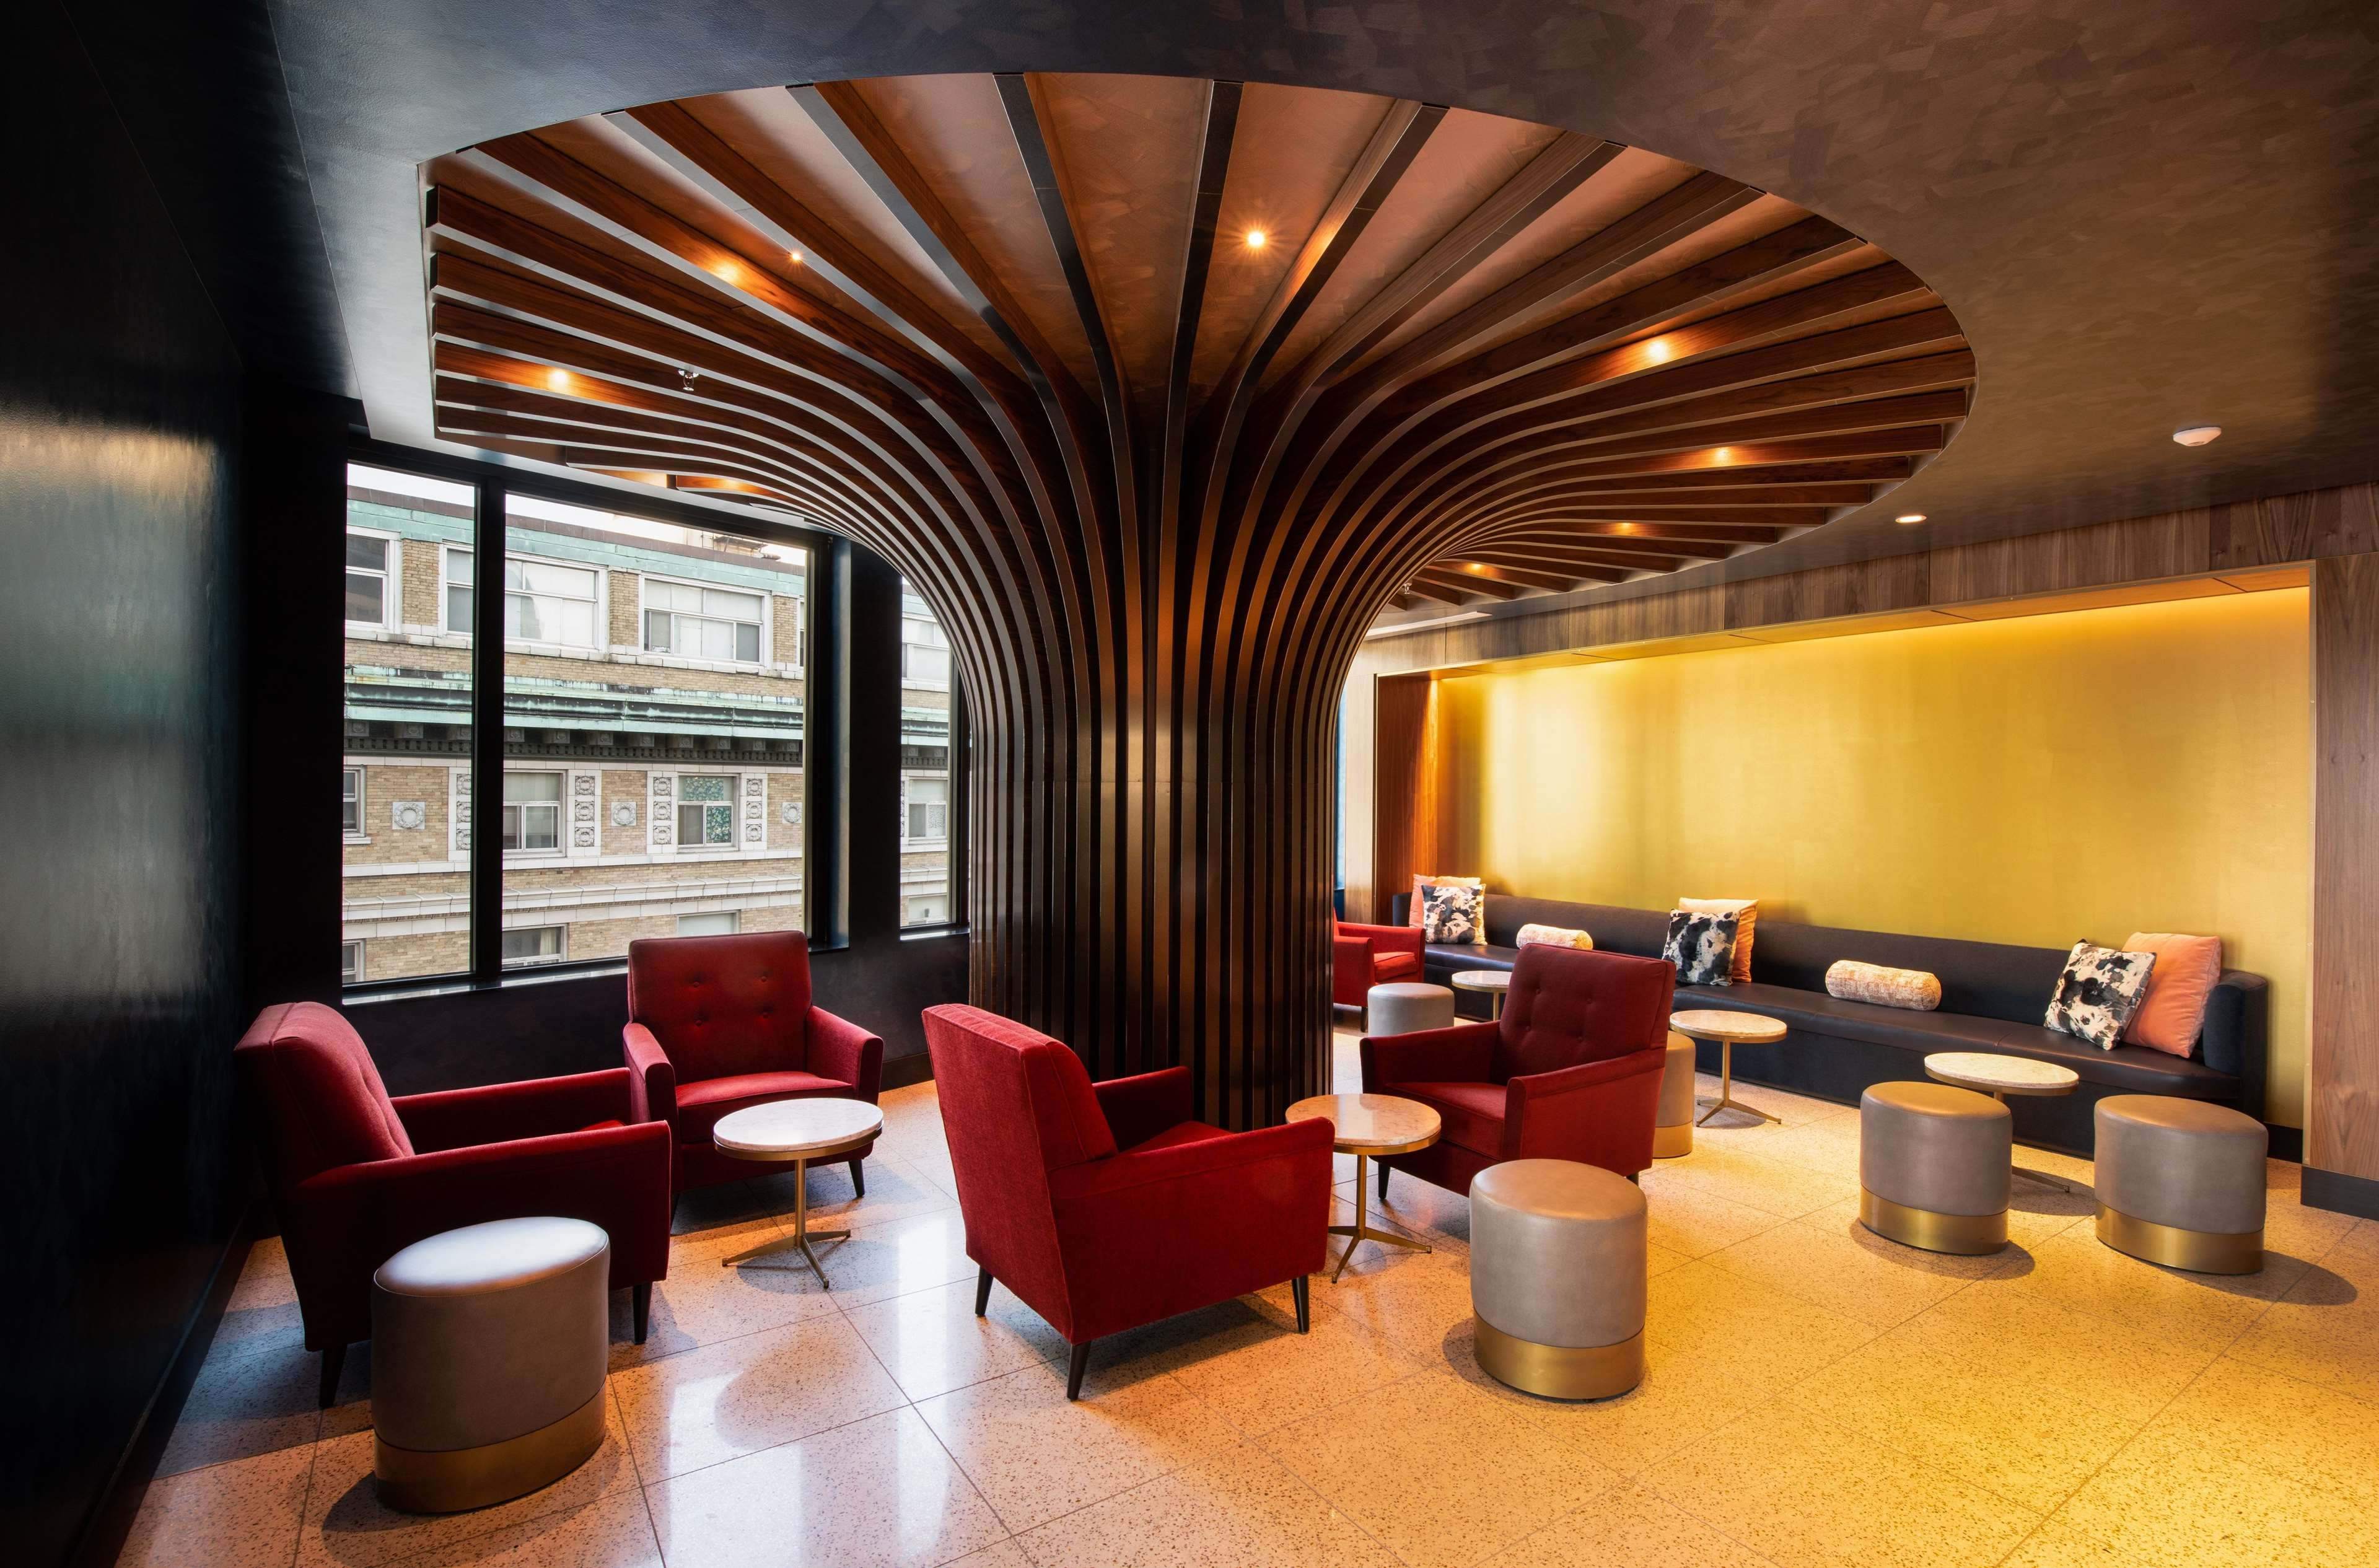 The Charter Hotel Seattle, Curio Collection by Hilton image 36